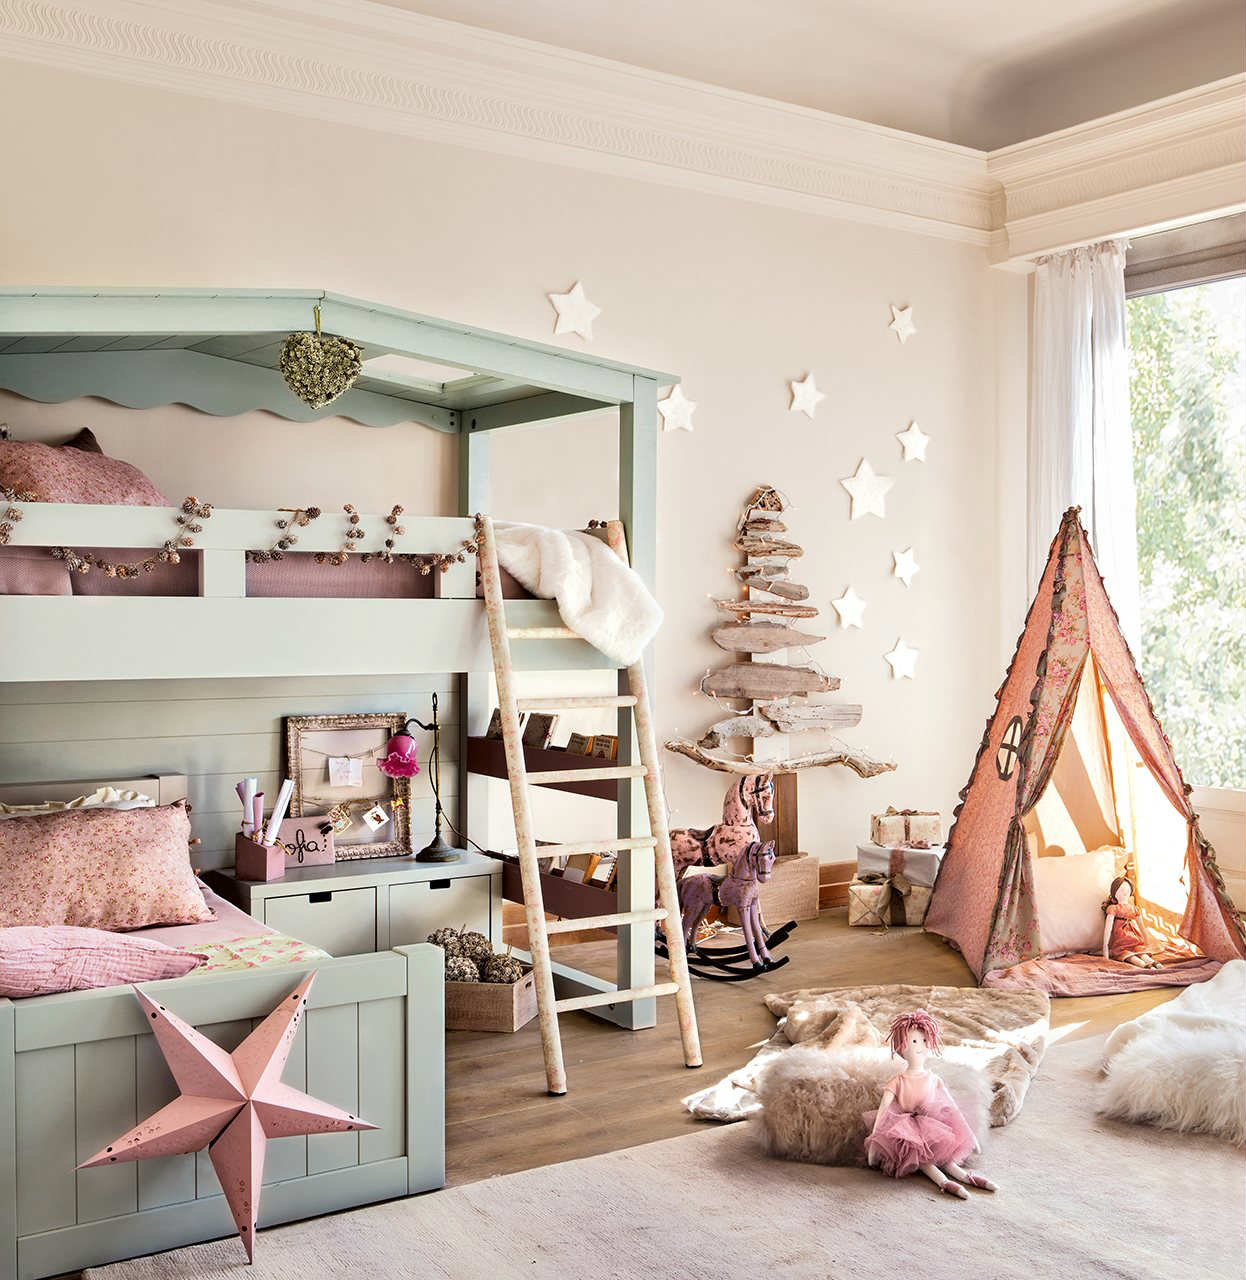 images of cute kids bedrooms emiliesbeauty com rh emiliesbeauty com Pretty Rooms Girls Room